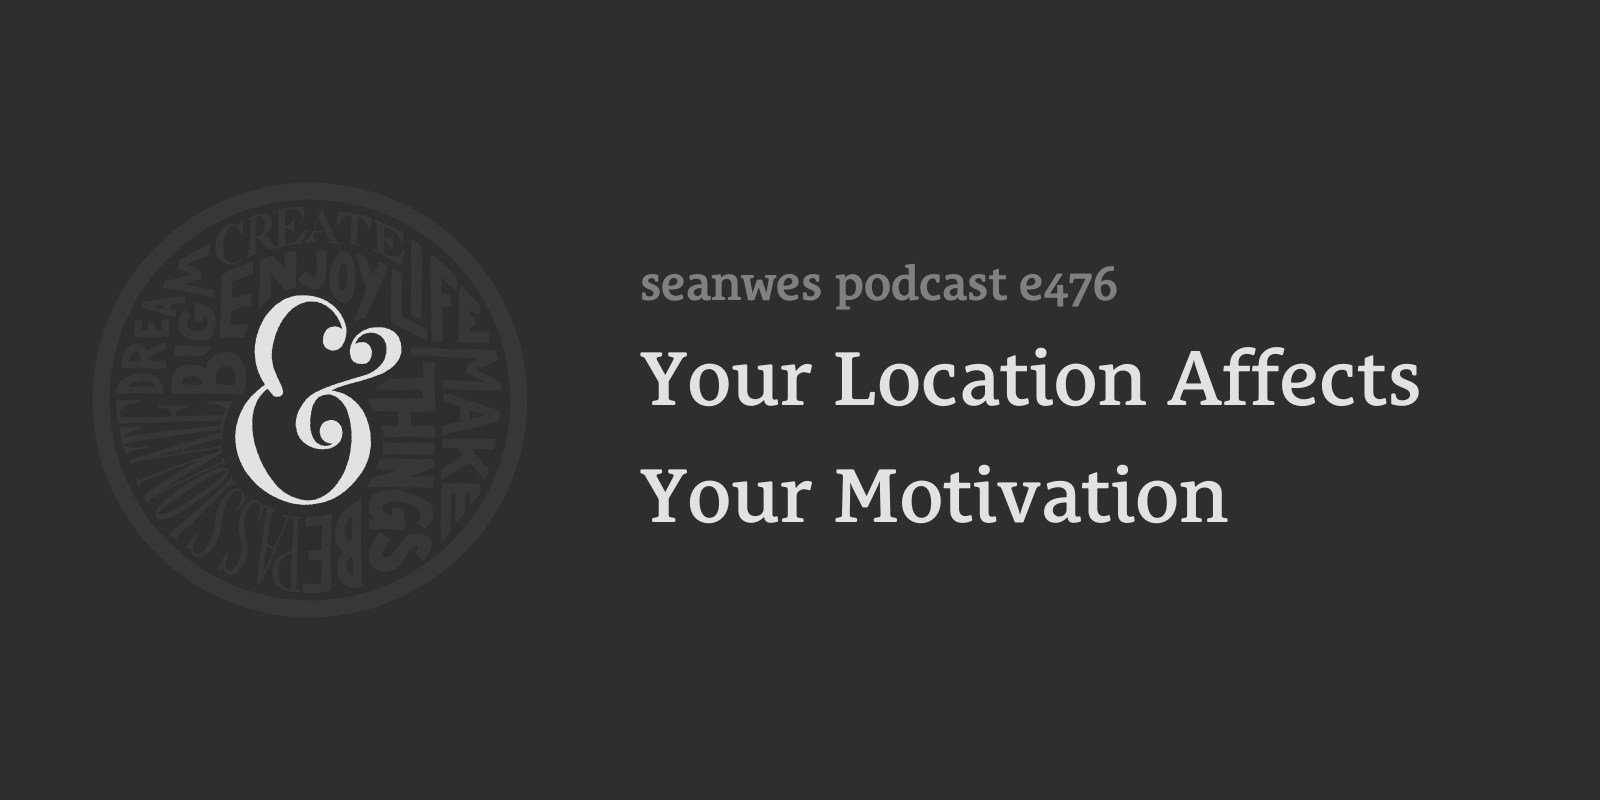 Your Location Affects Your Motivation